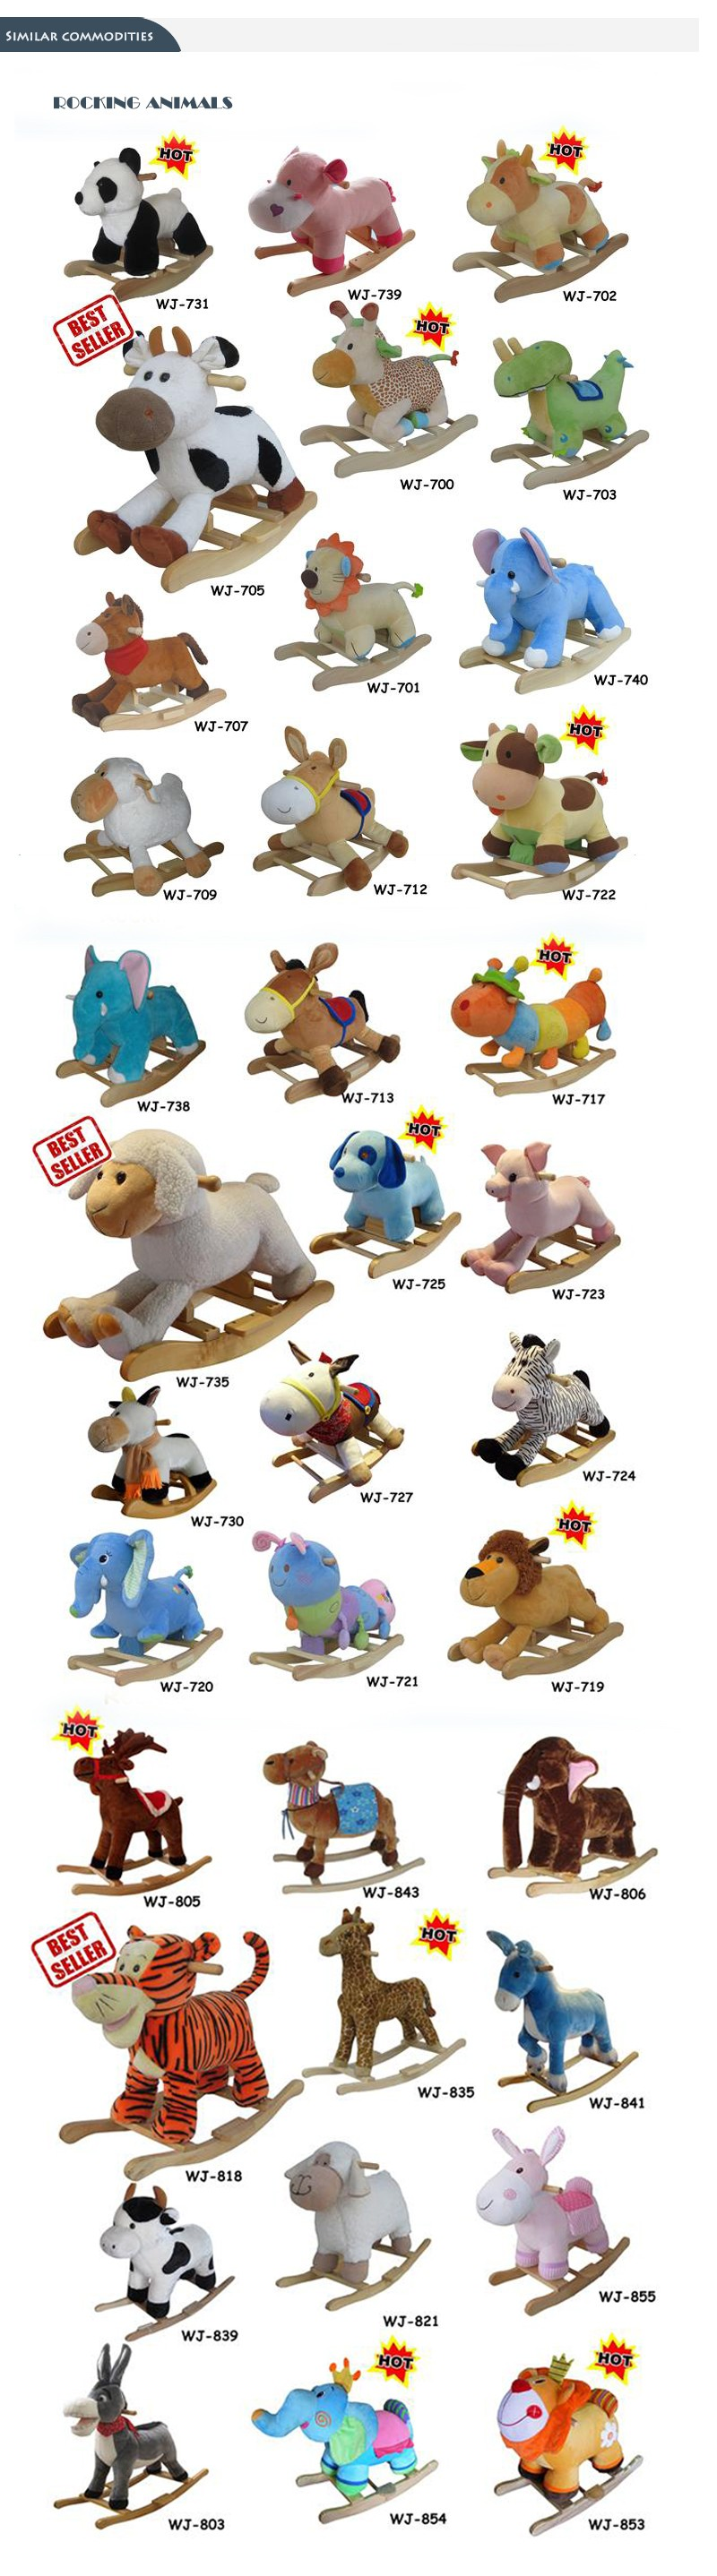 60*35*50cm Adorable SGS audited new design plush rocking animal chairs stuffed with PP cotton